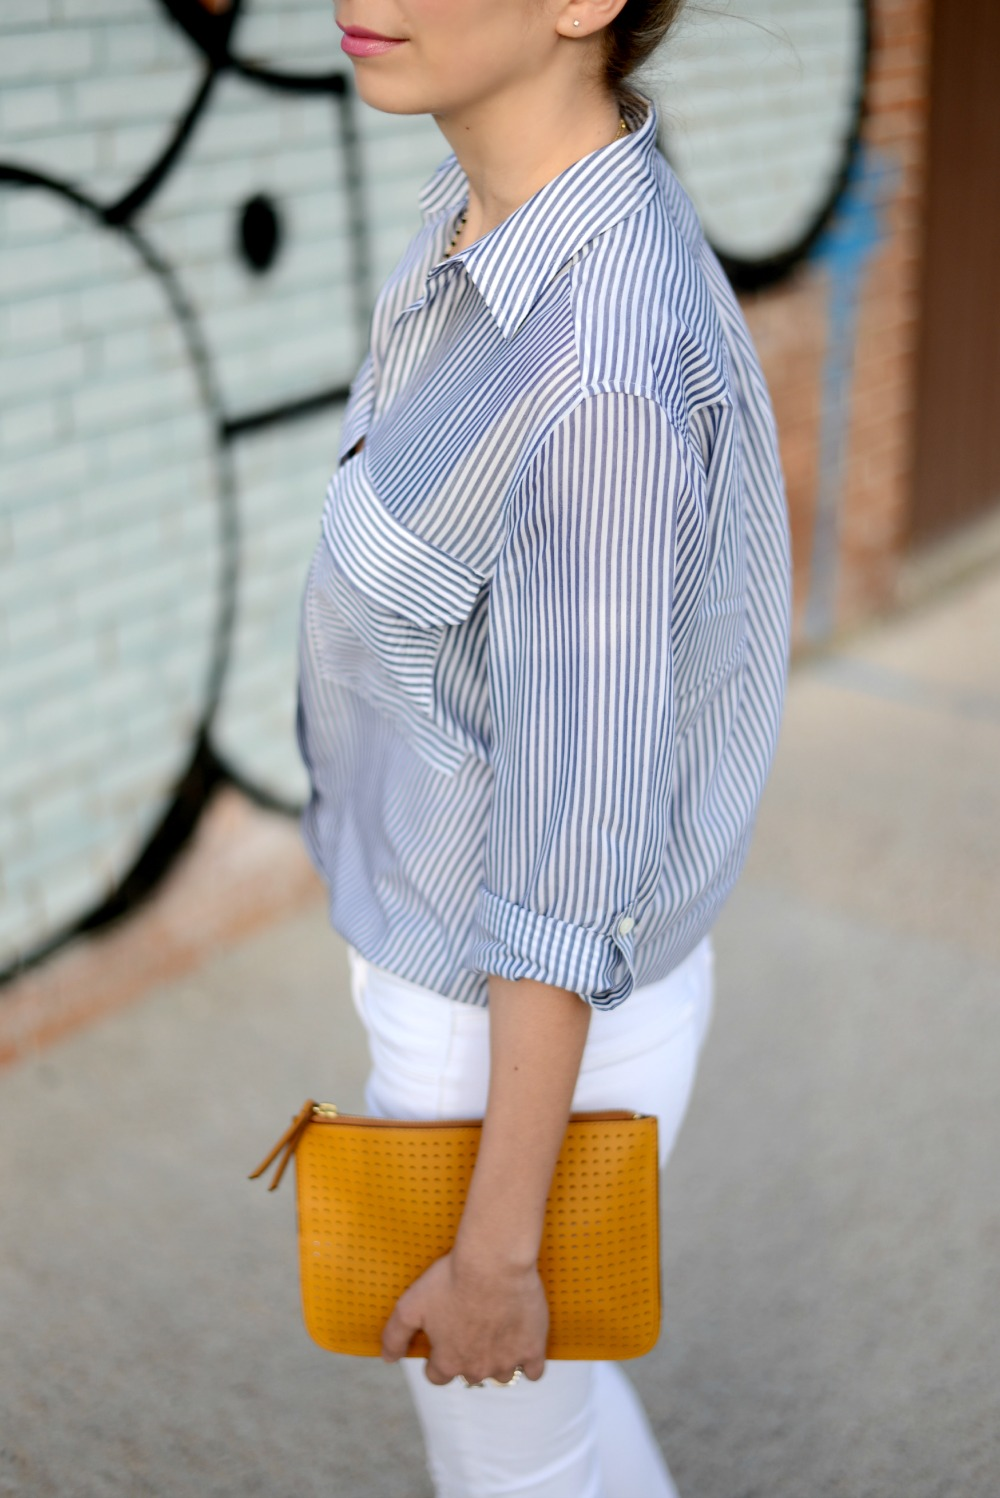 Brand white ripped jeans, stripped shirt, nude sandals, street style. Gap clutch